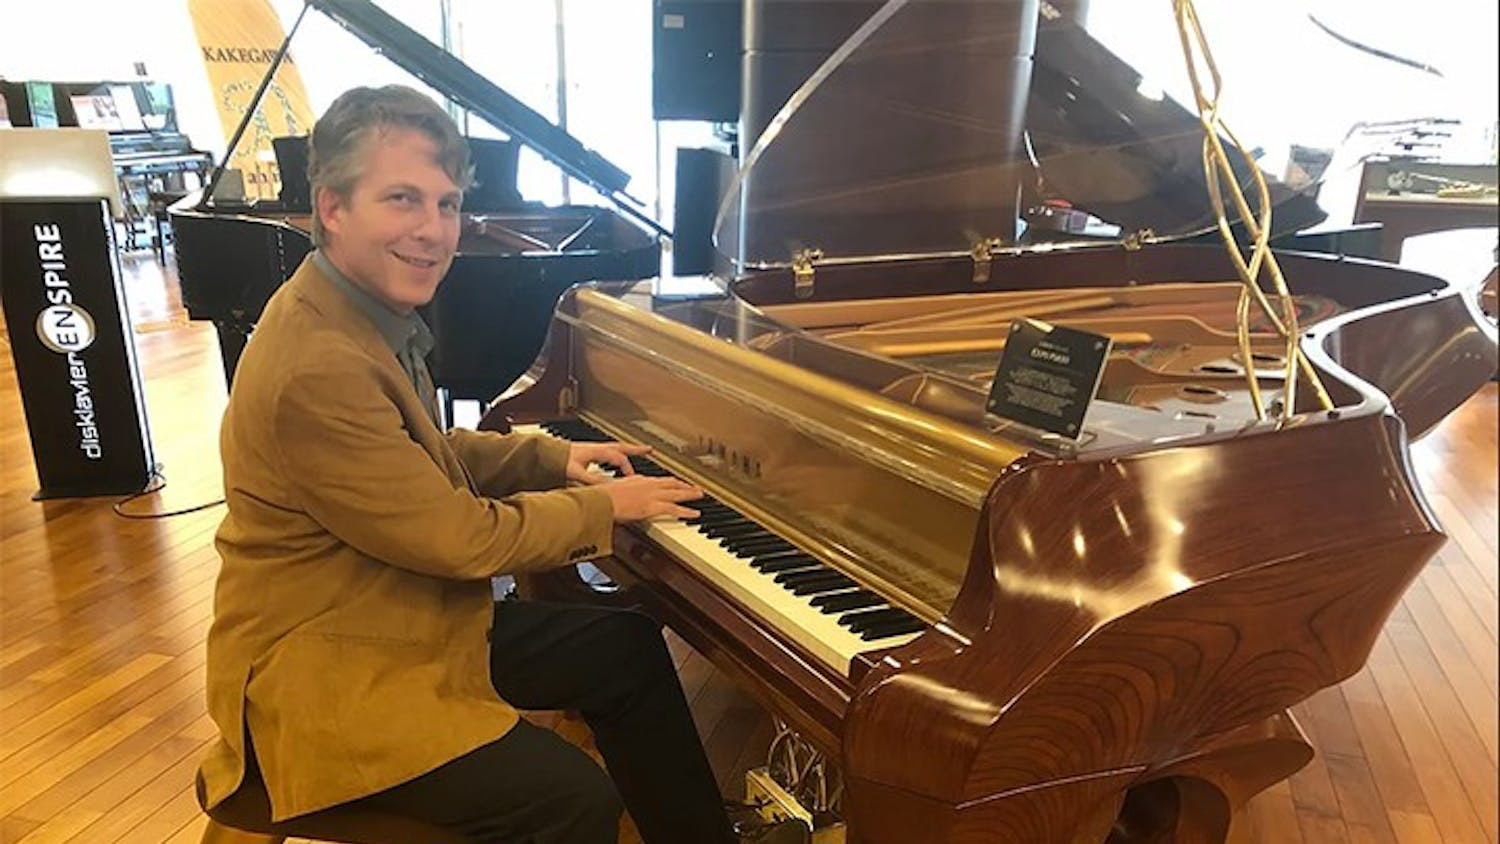 """Music entrepreneurship professor David Cutler, whose book """"The Savvy Musician"""" focuses on how to turn a musical education into a successful career, poses with a piano."""